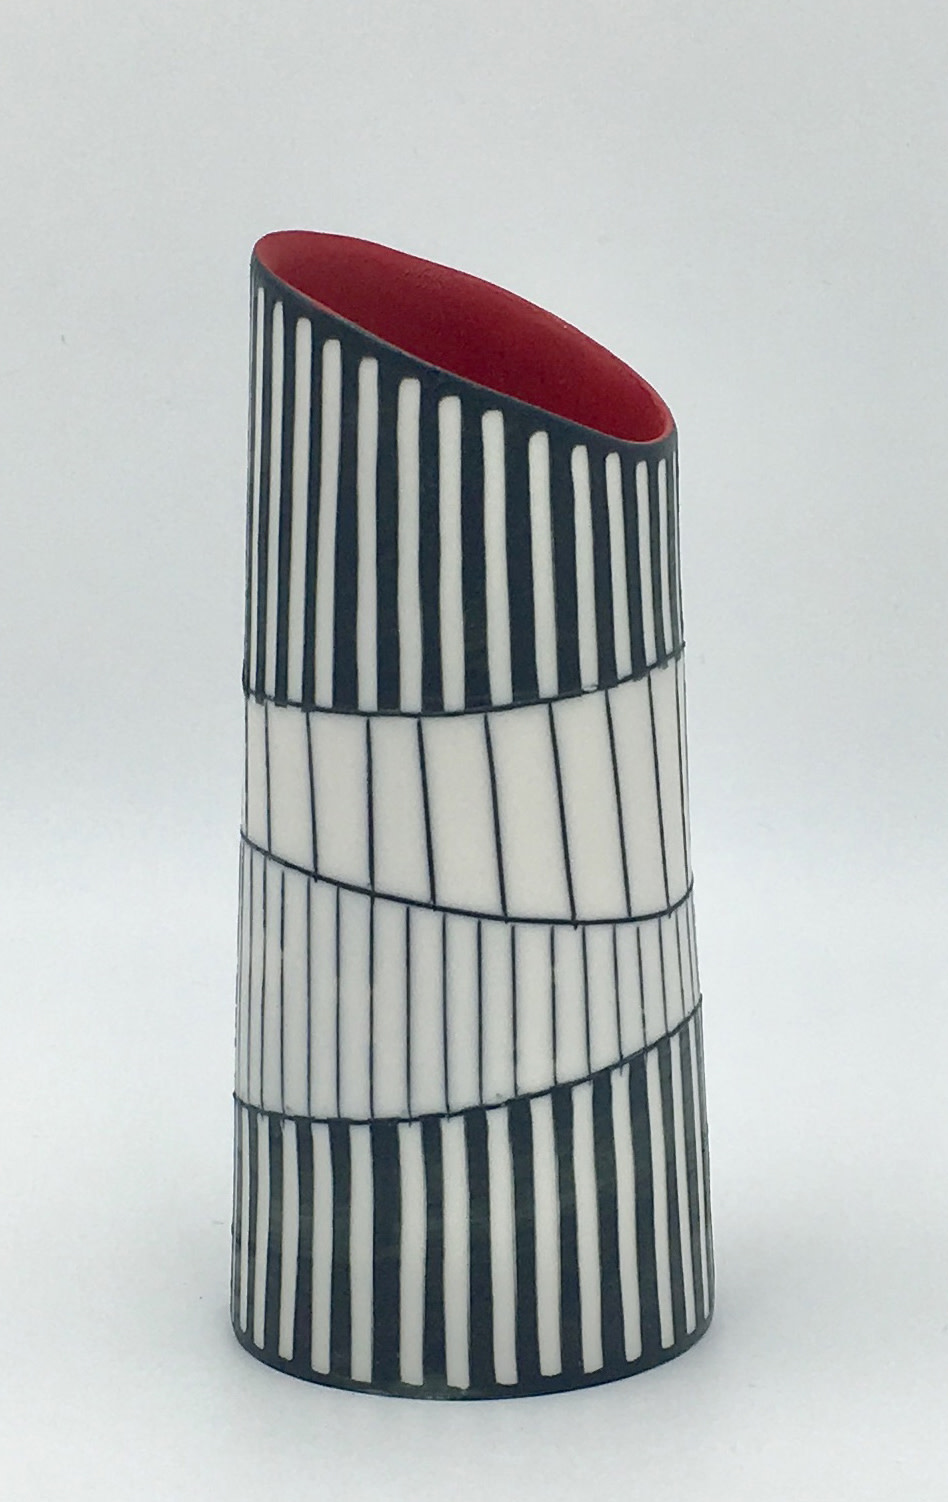 "<span class=""link fancybox-details-link""><a href=""/artists/195-lara-scobie/works/6530-lara-scobie-vase-with-tilted-rim-2019/"">View Detail Page</a></span><div class=""artist""><strong>Lara Scobie</strong></div> <div class=""title""><em>Vase with Tilted Rim</em>, 2019</div> <div class=""medium"">Porcelain</div>"